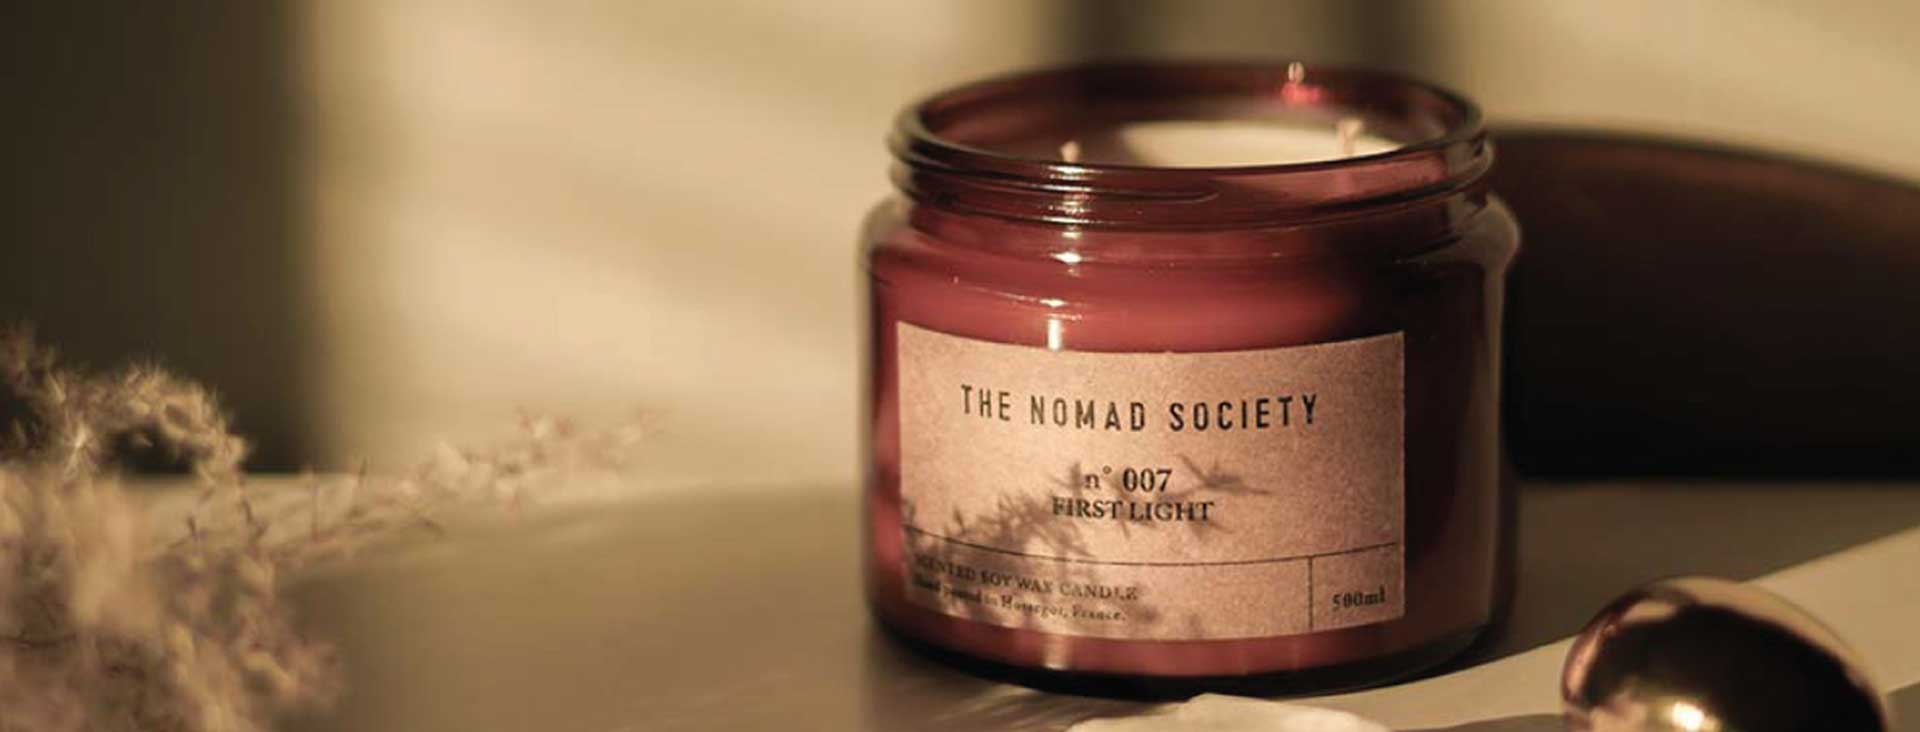 the nomad society soy organic candles